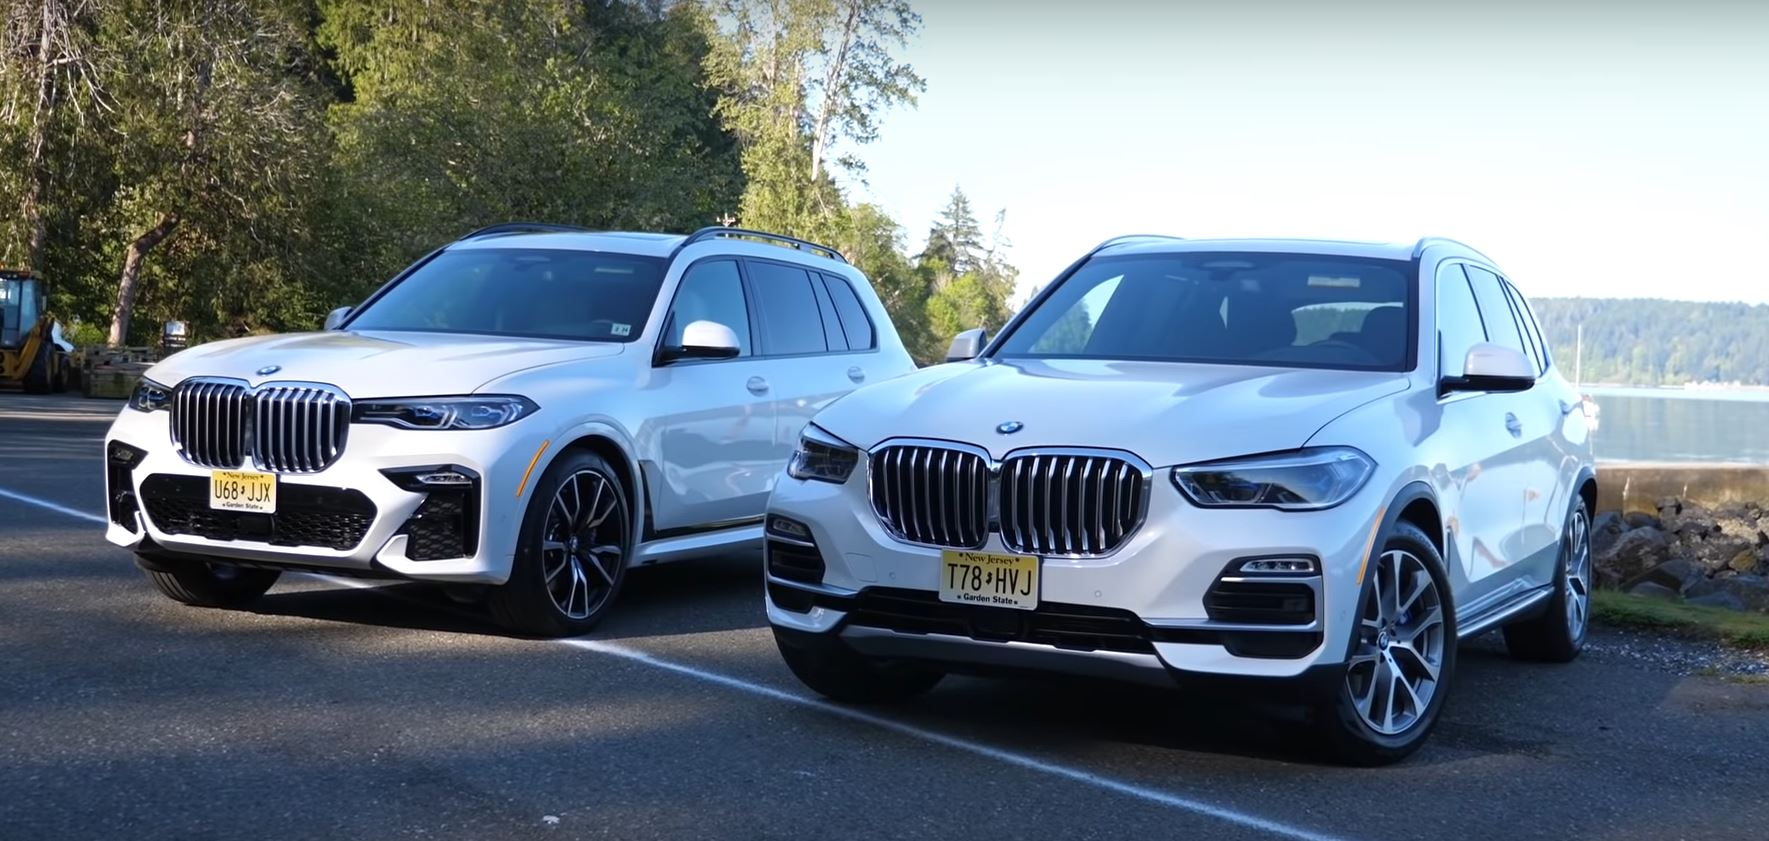 Bmw X5 Vs X7 A Side By Side Comparison Autoevolution